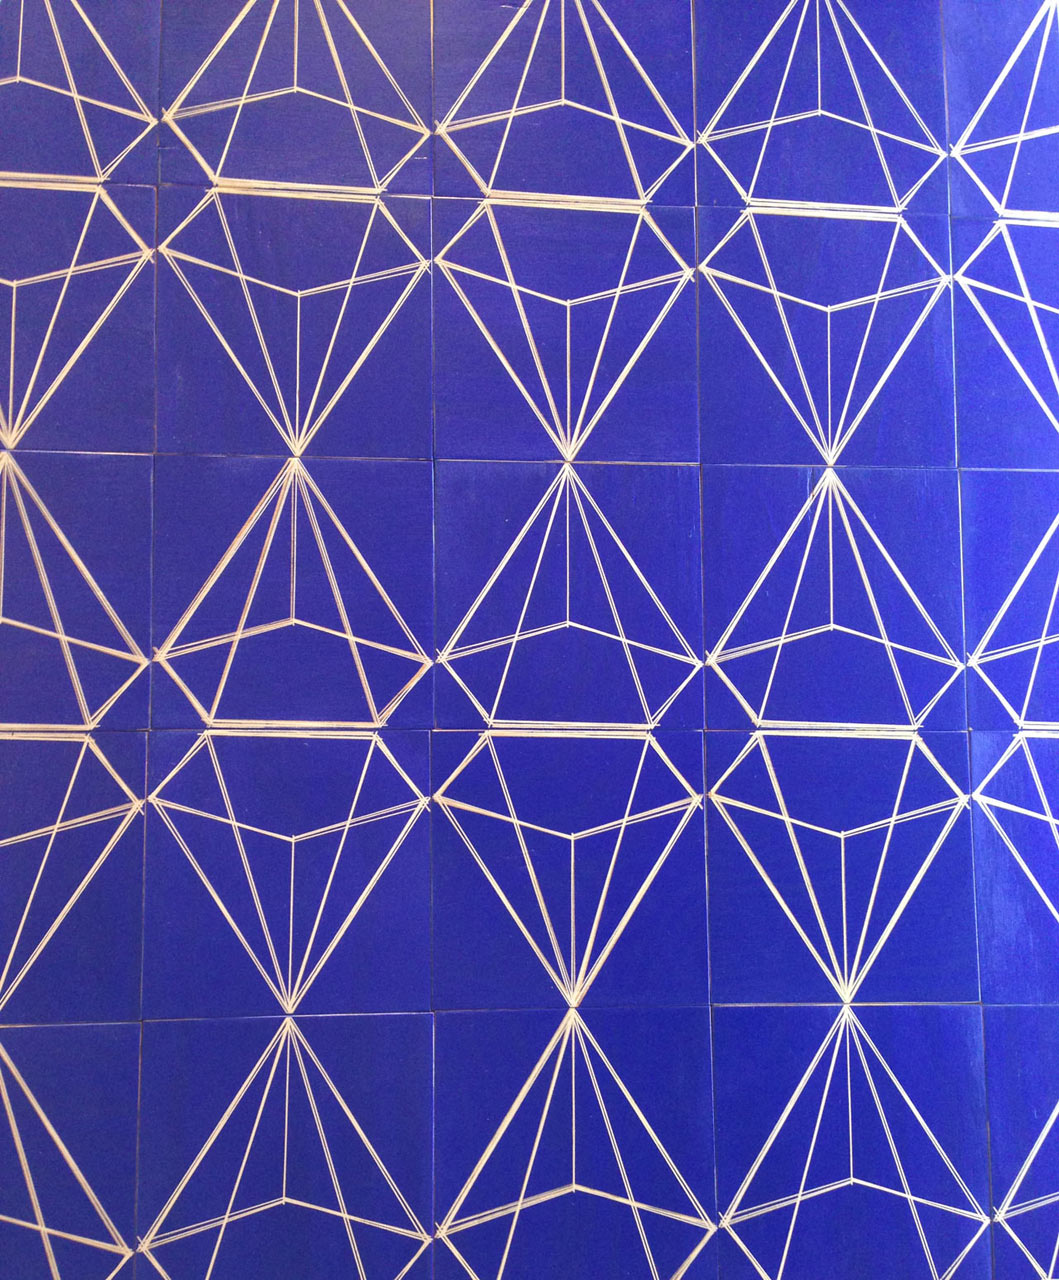 ICFF4-17-Moonish-Magnetic-tiles